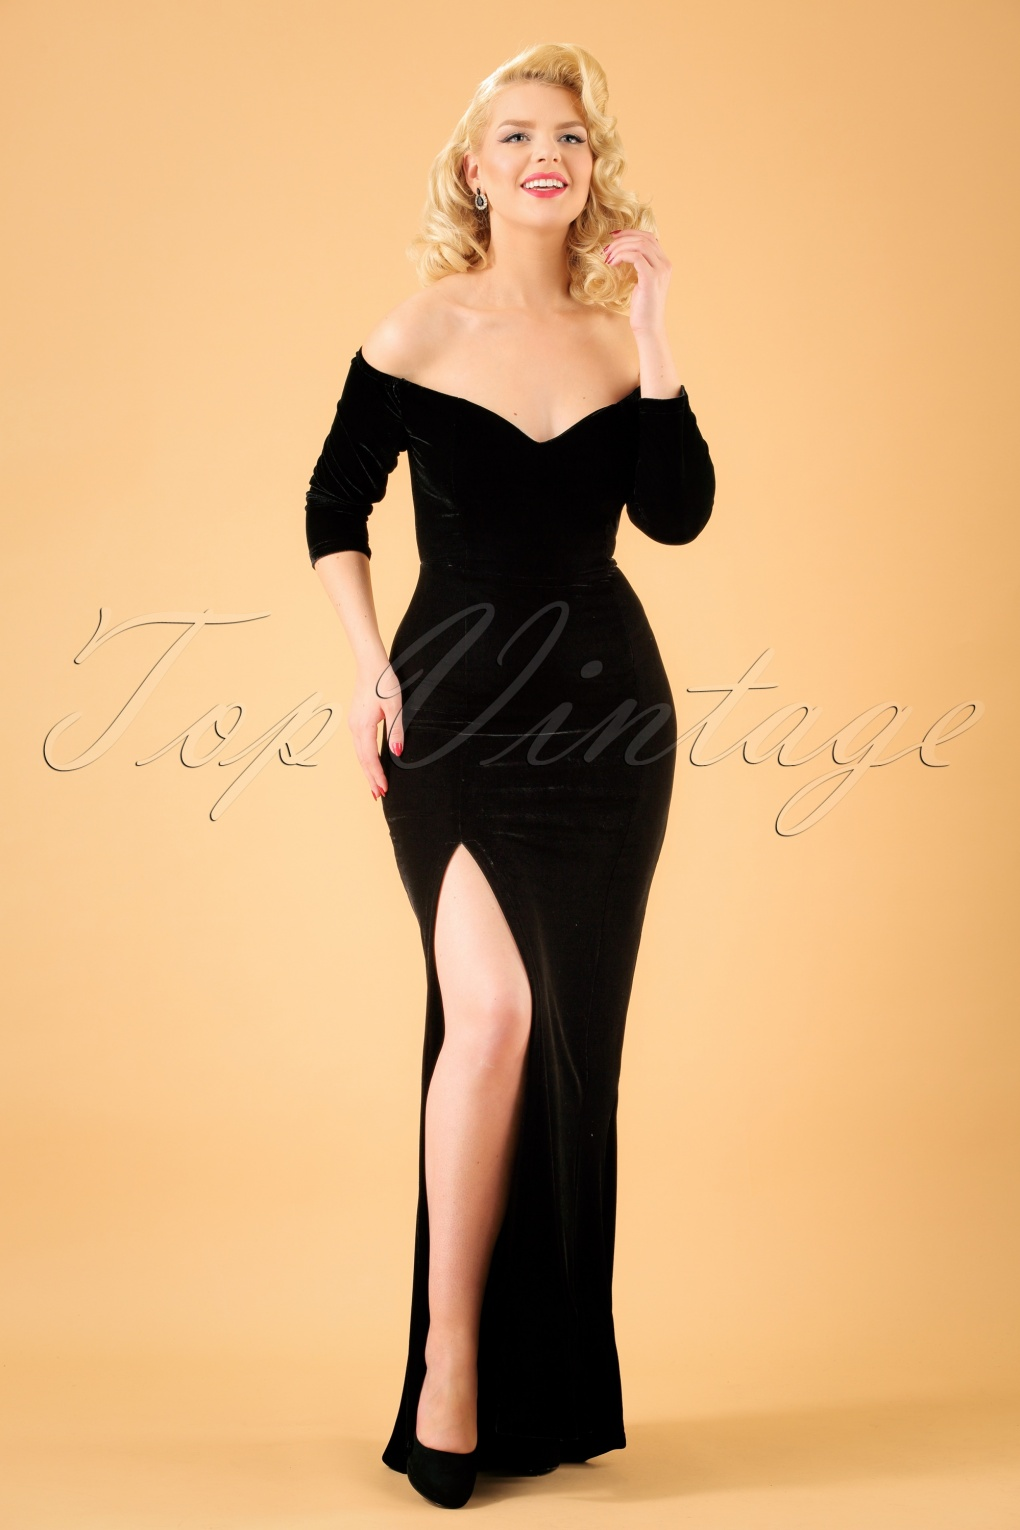 What Did Women Wear in the 1950s? 1950s Fashion Guide 50s Anjelica Velvet Maxi Dress in Black £63.30 AT vintagedancer.com